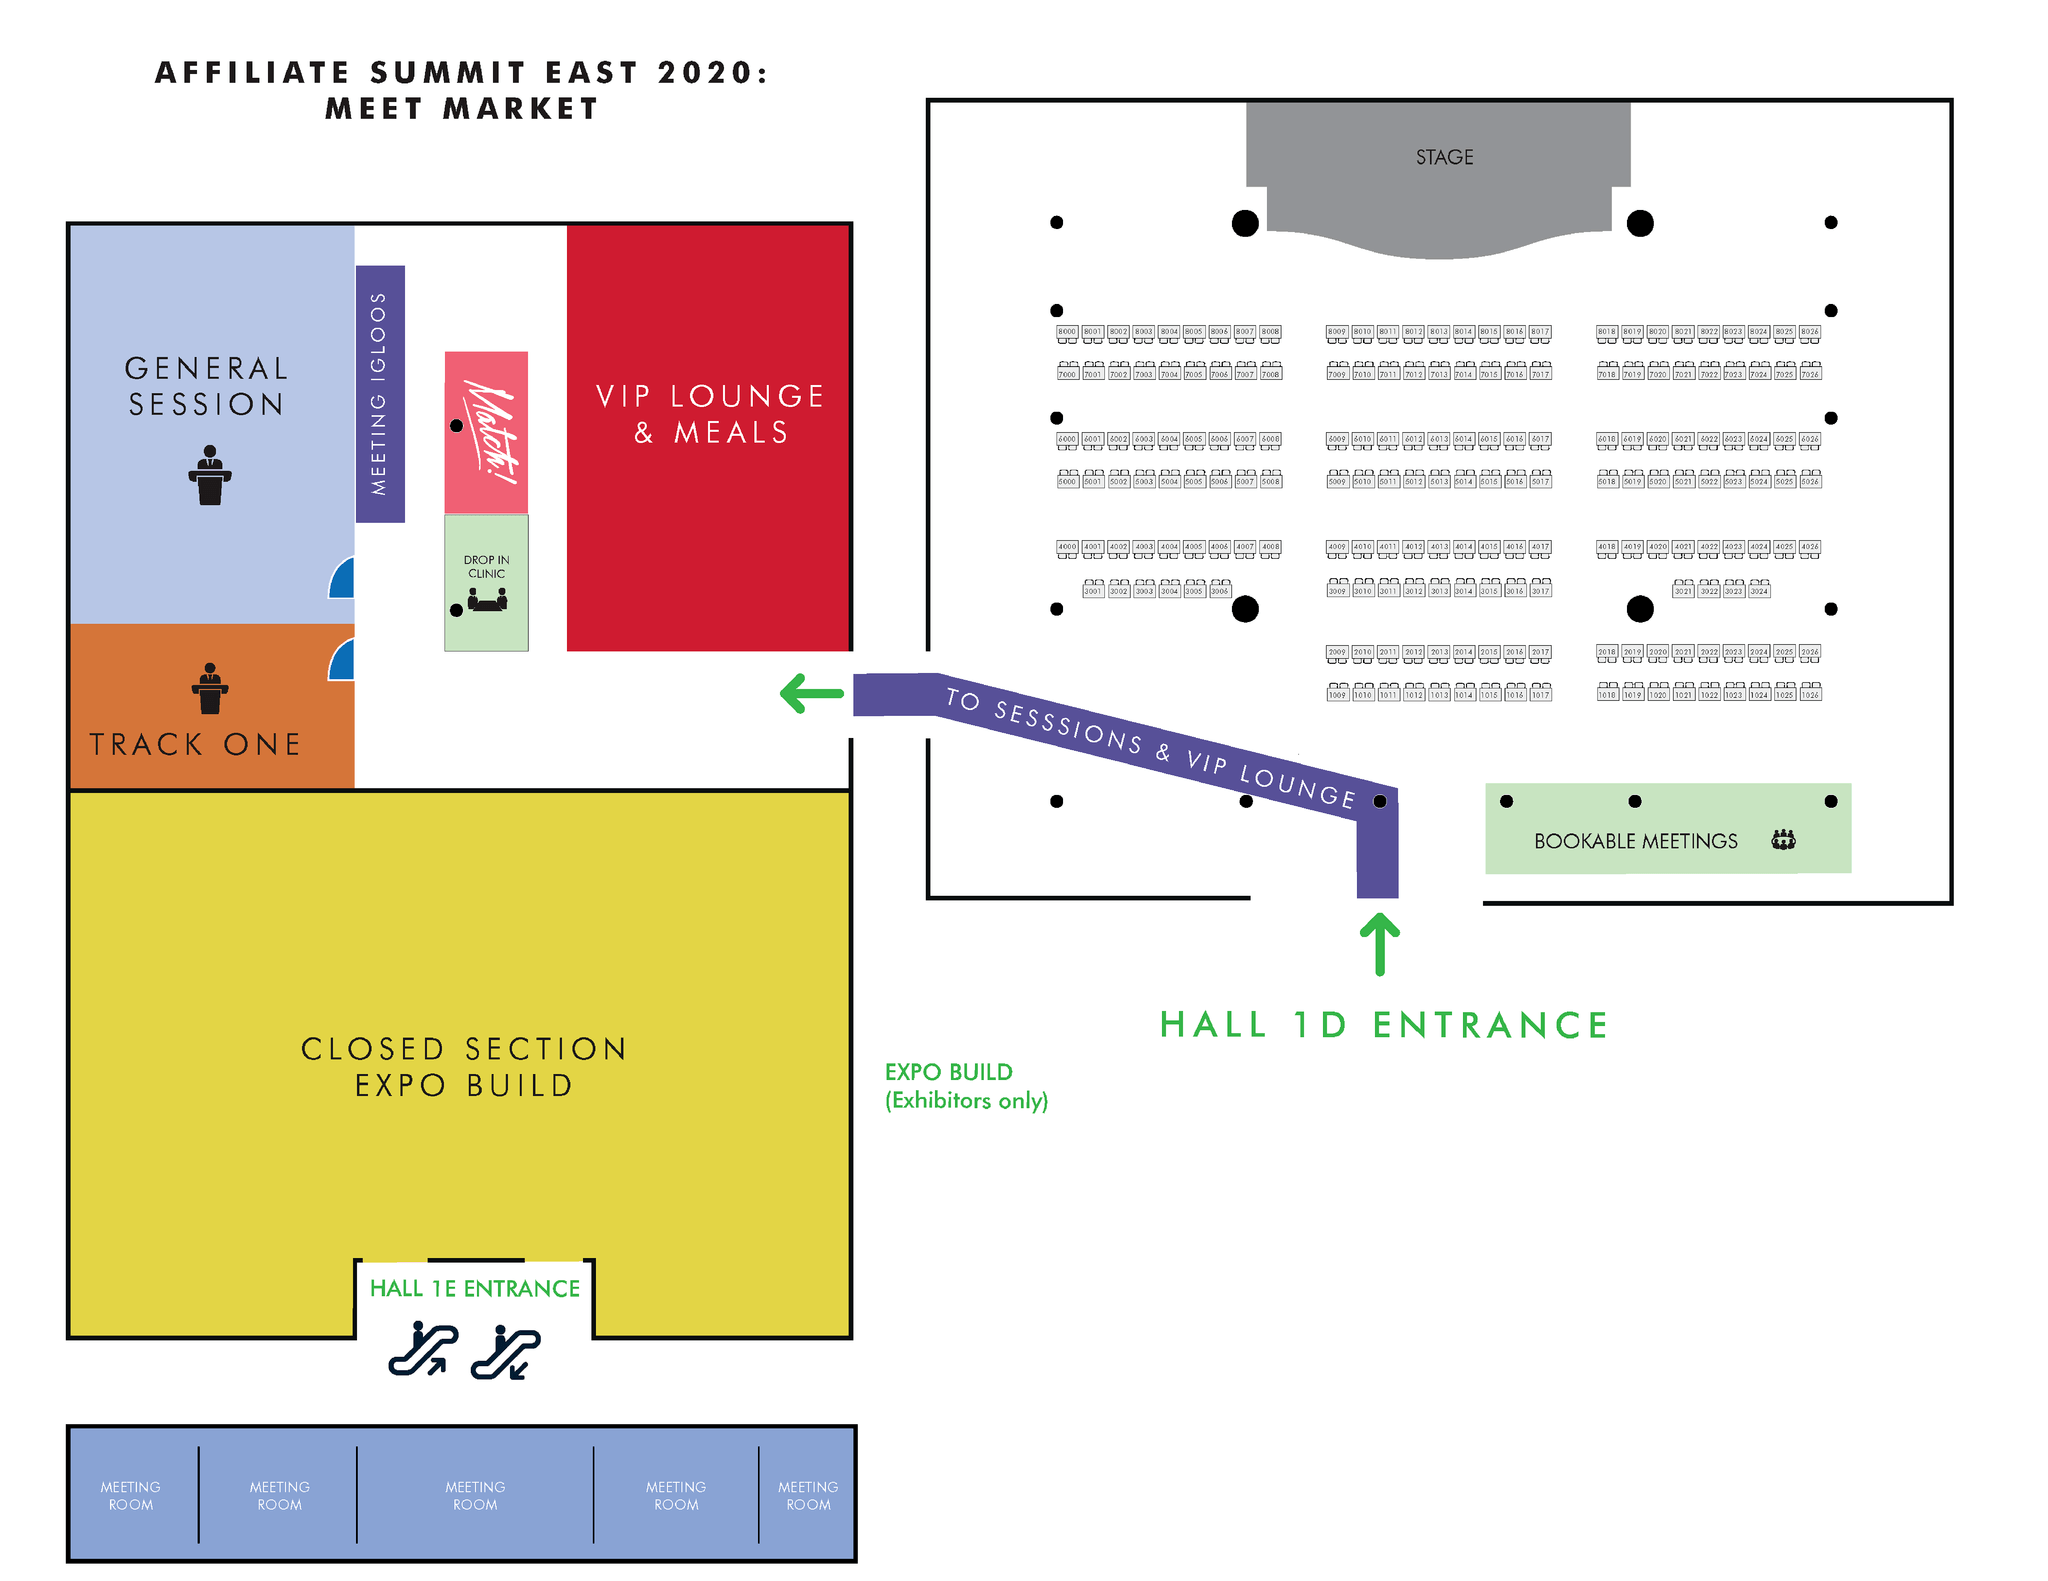 meet market map